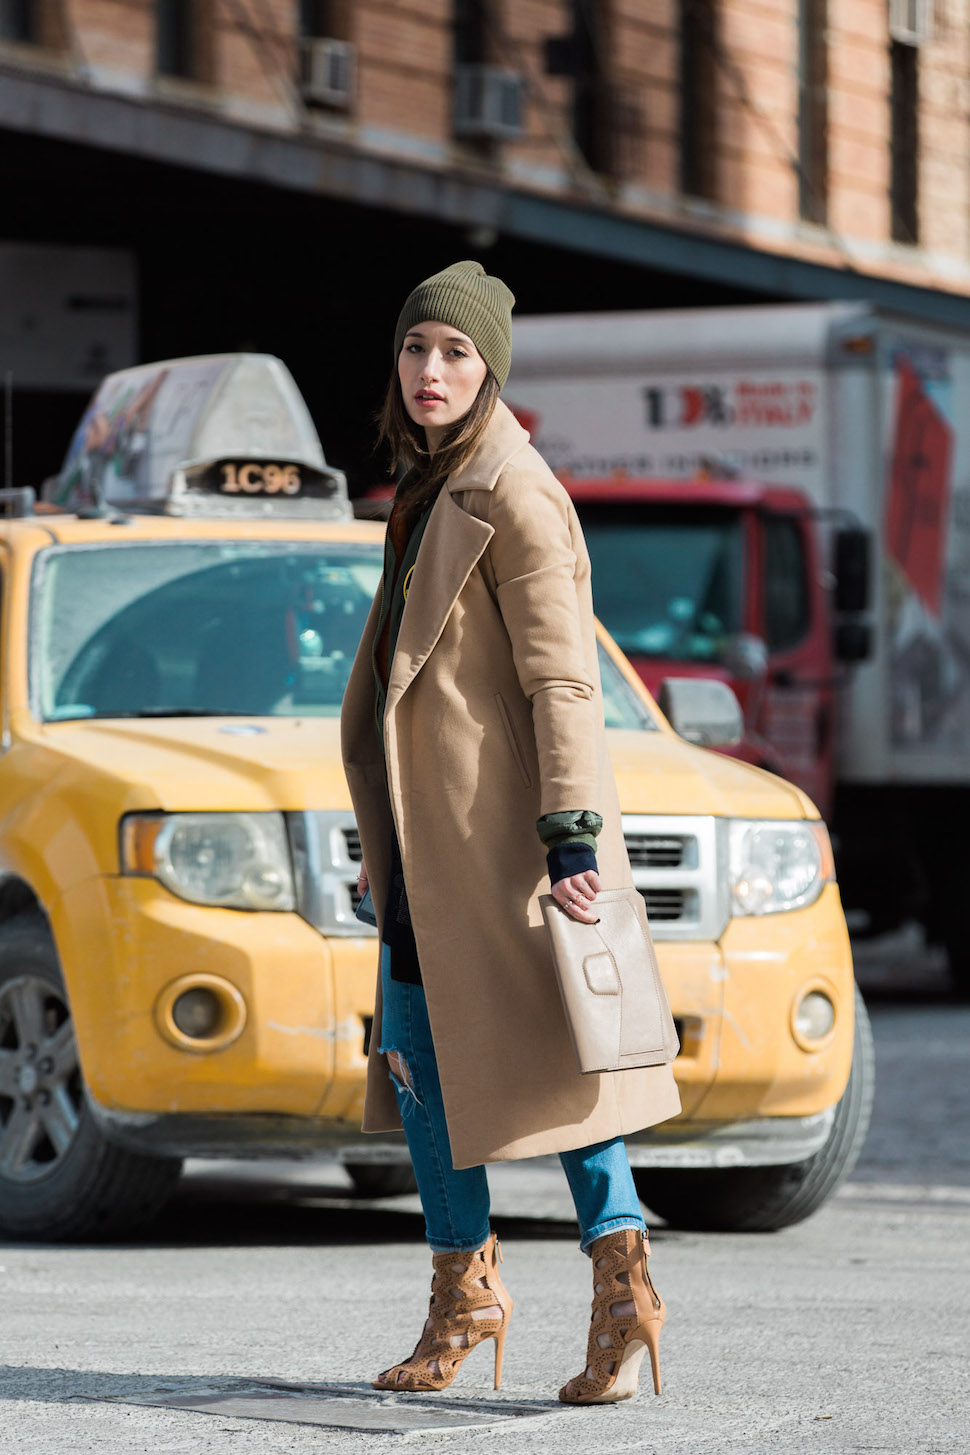 Alexandra Guerain is wearing a classic Miss Guided camel coat